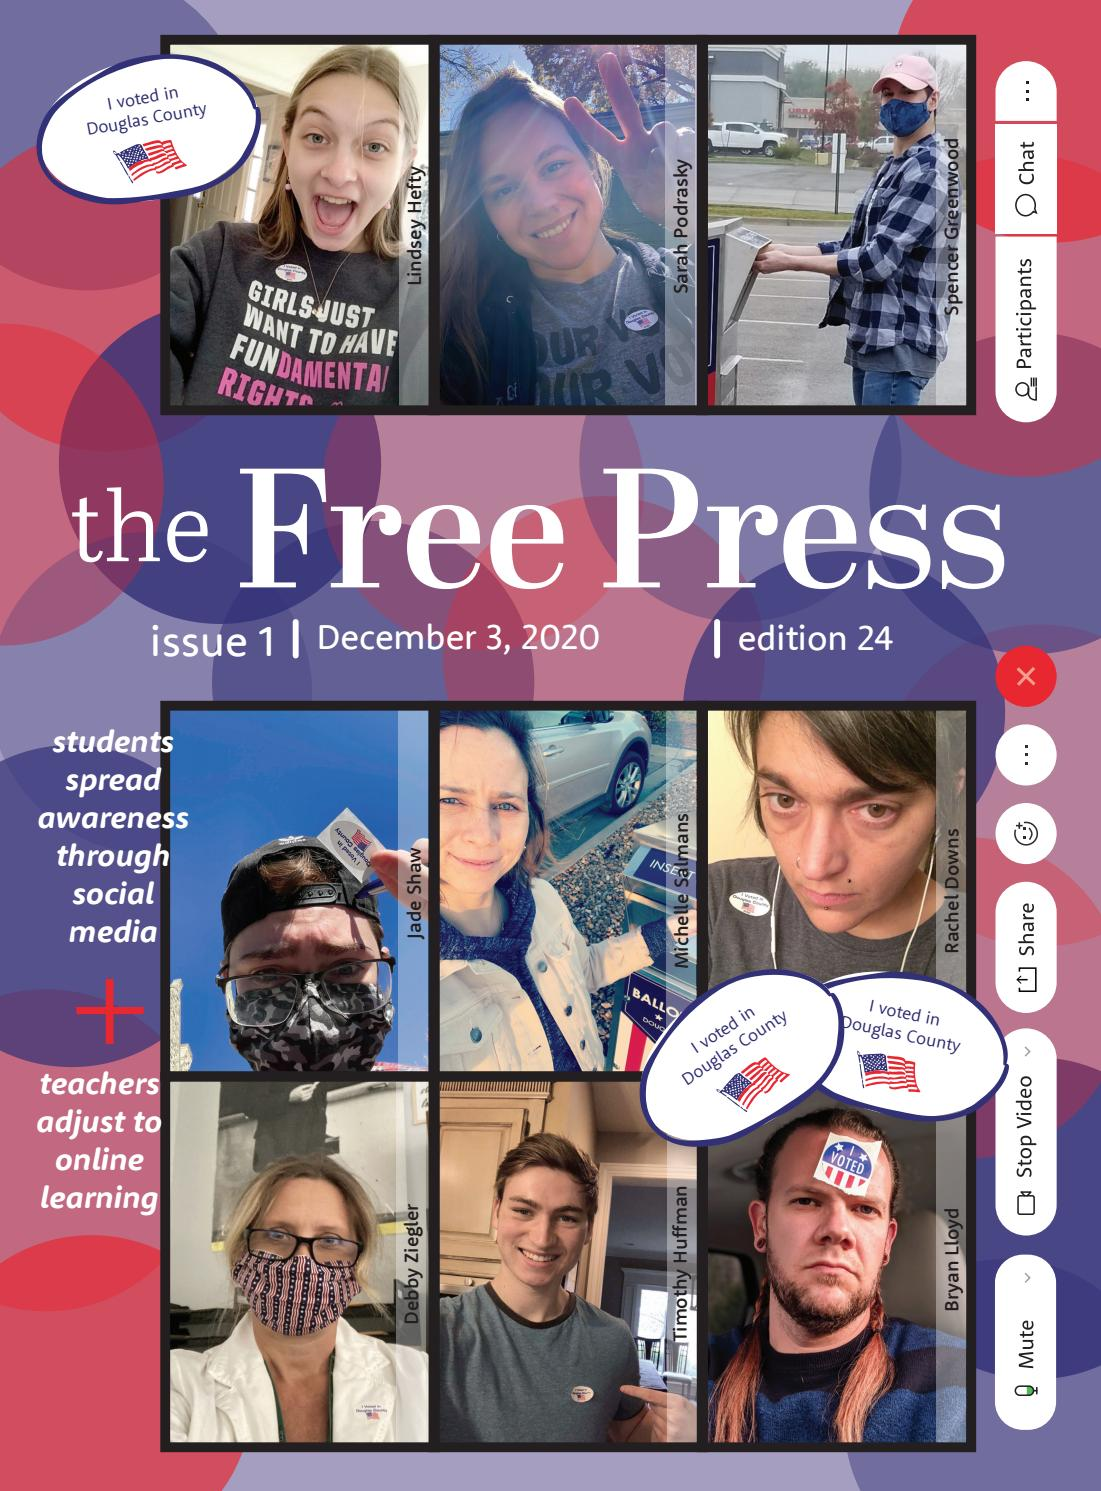 Free Press: Issue 1, Edition 24